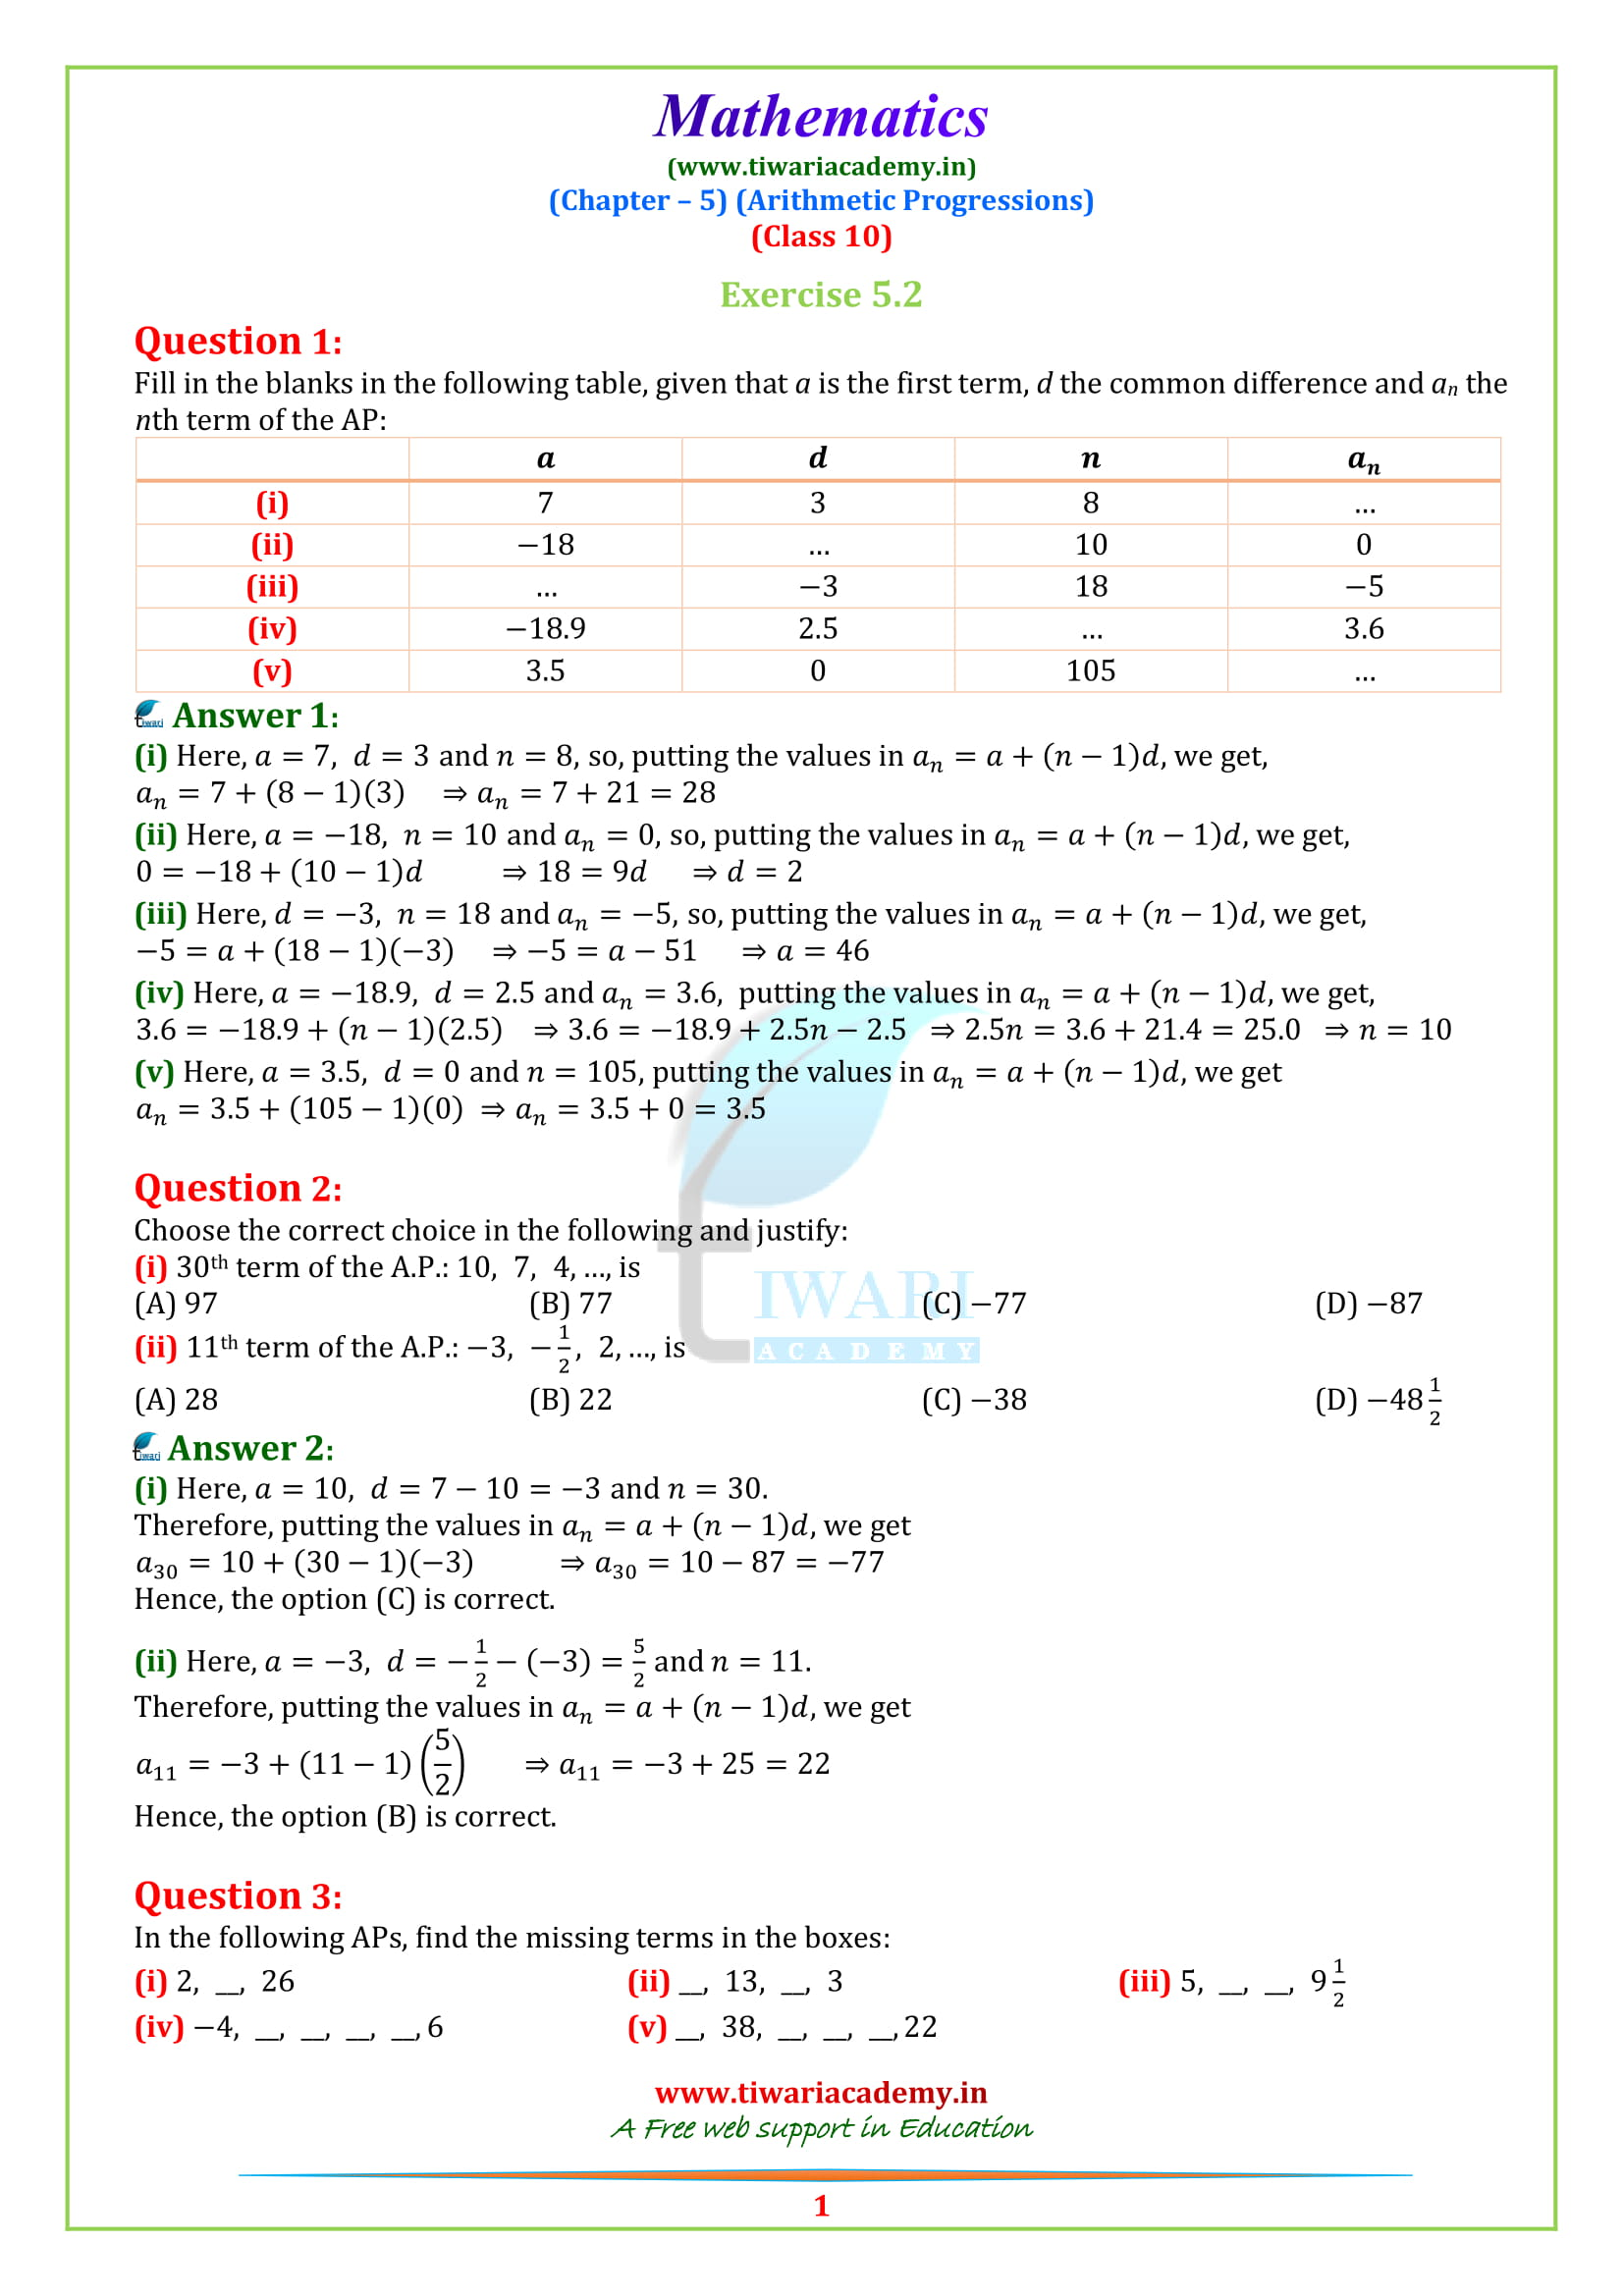 NCERT Solutions for class 10 Maths Exercise 5.2 Question 1, 2, 3, 4